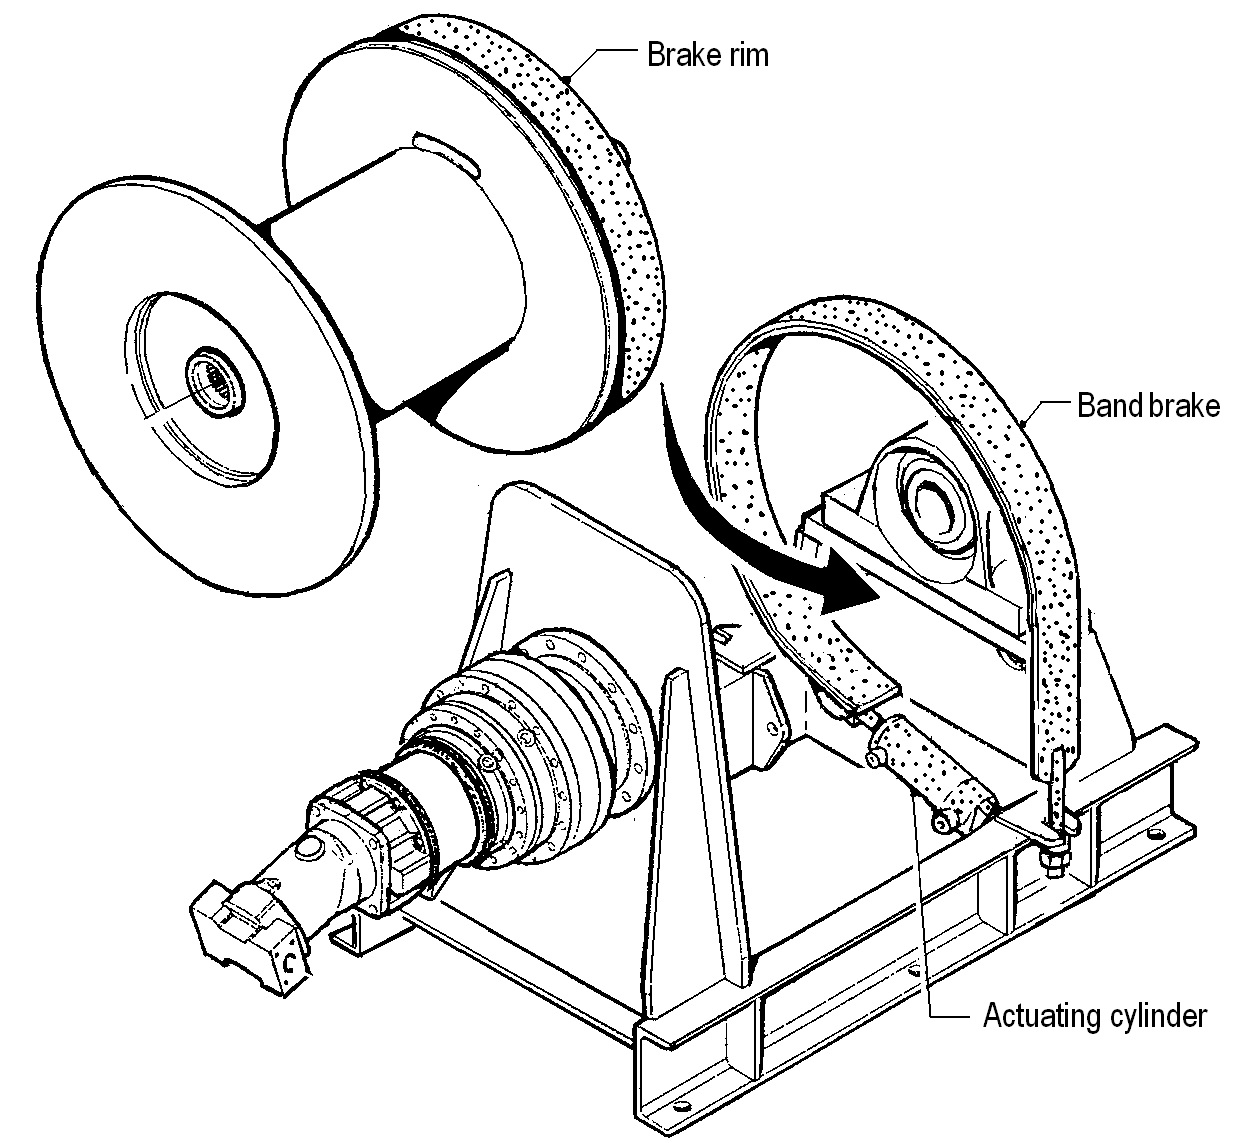 About winches figure 14 - Typical automatic bandbrake (hydraulically actuated)